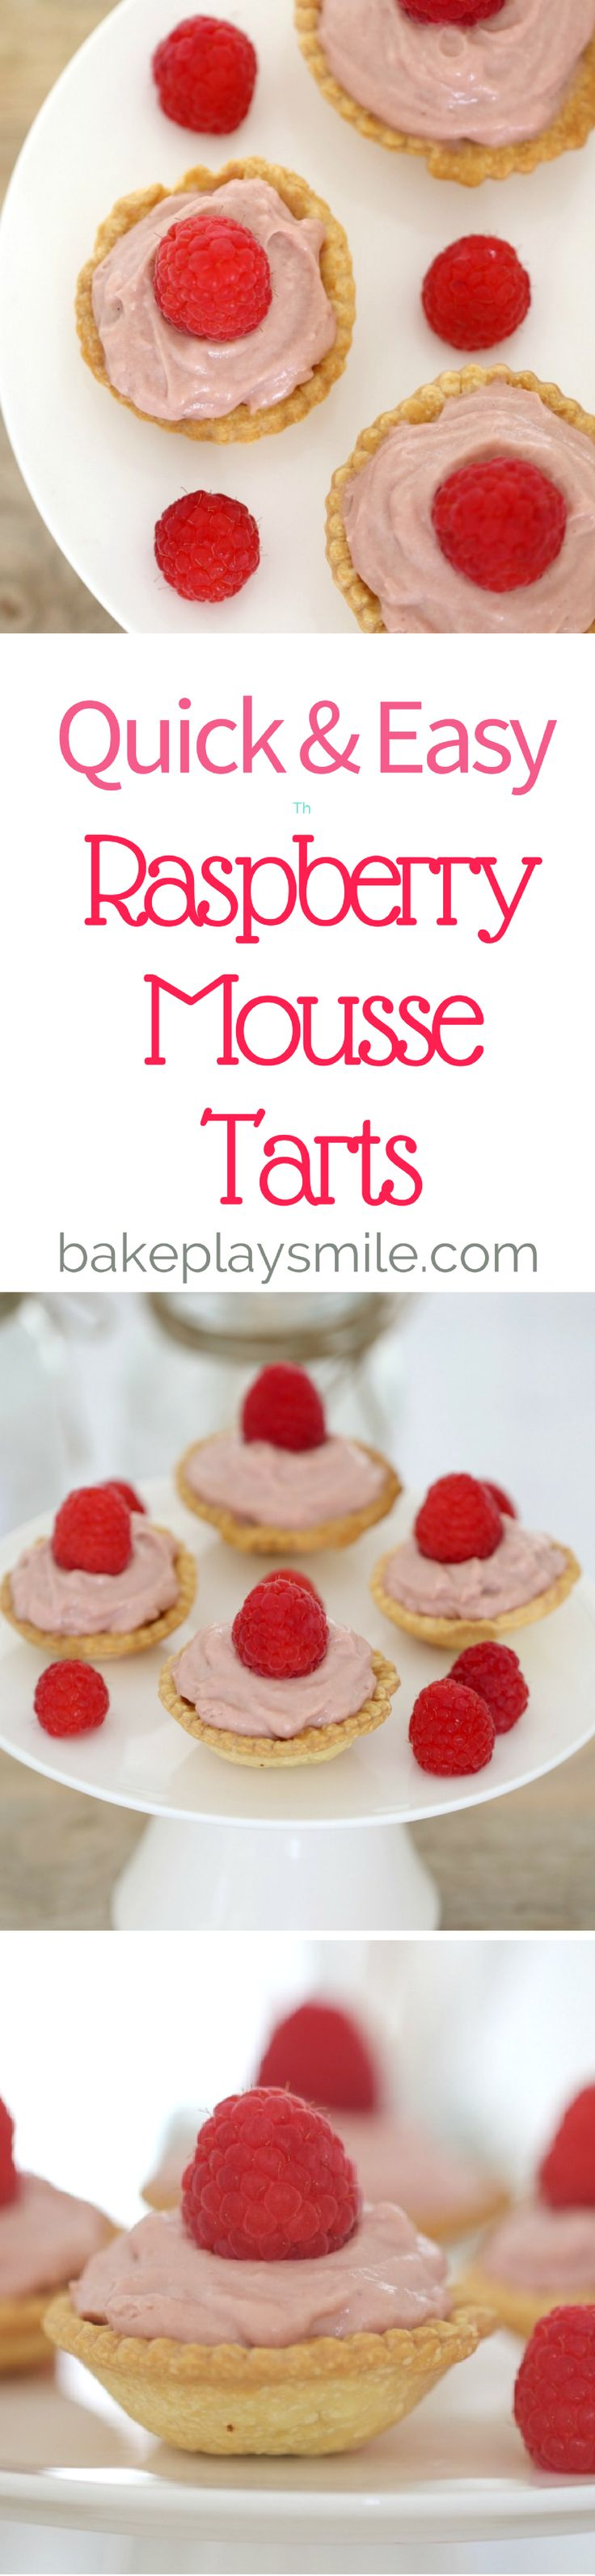 Mini Raspberry Mousse Tarts... the very best bite-sized dessert going round! The perfect combination of sweet and fruity – you're going to fall head over heels in love!   #mousse #raspberry #mini #individual #desserts #pastry #tarts #thermomix #conventional #Christmas